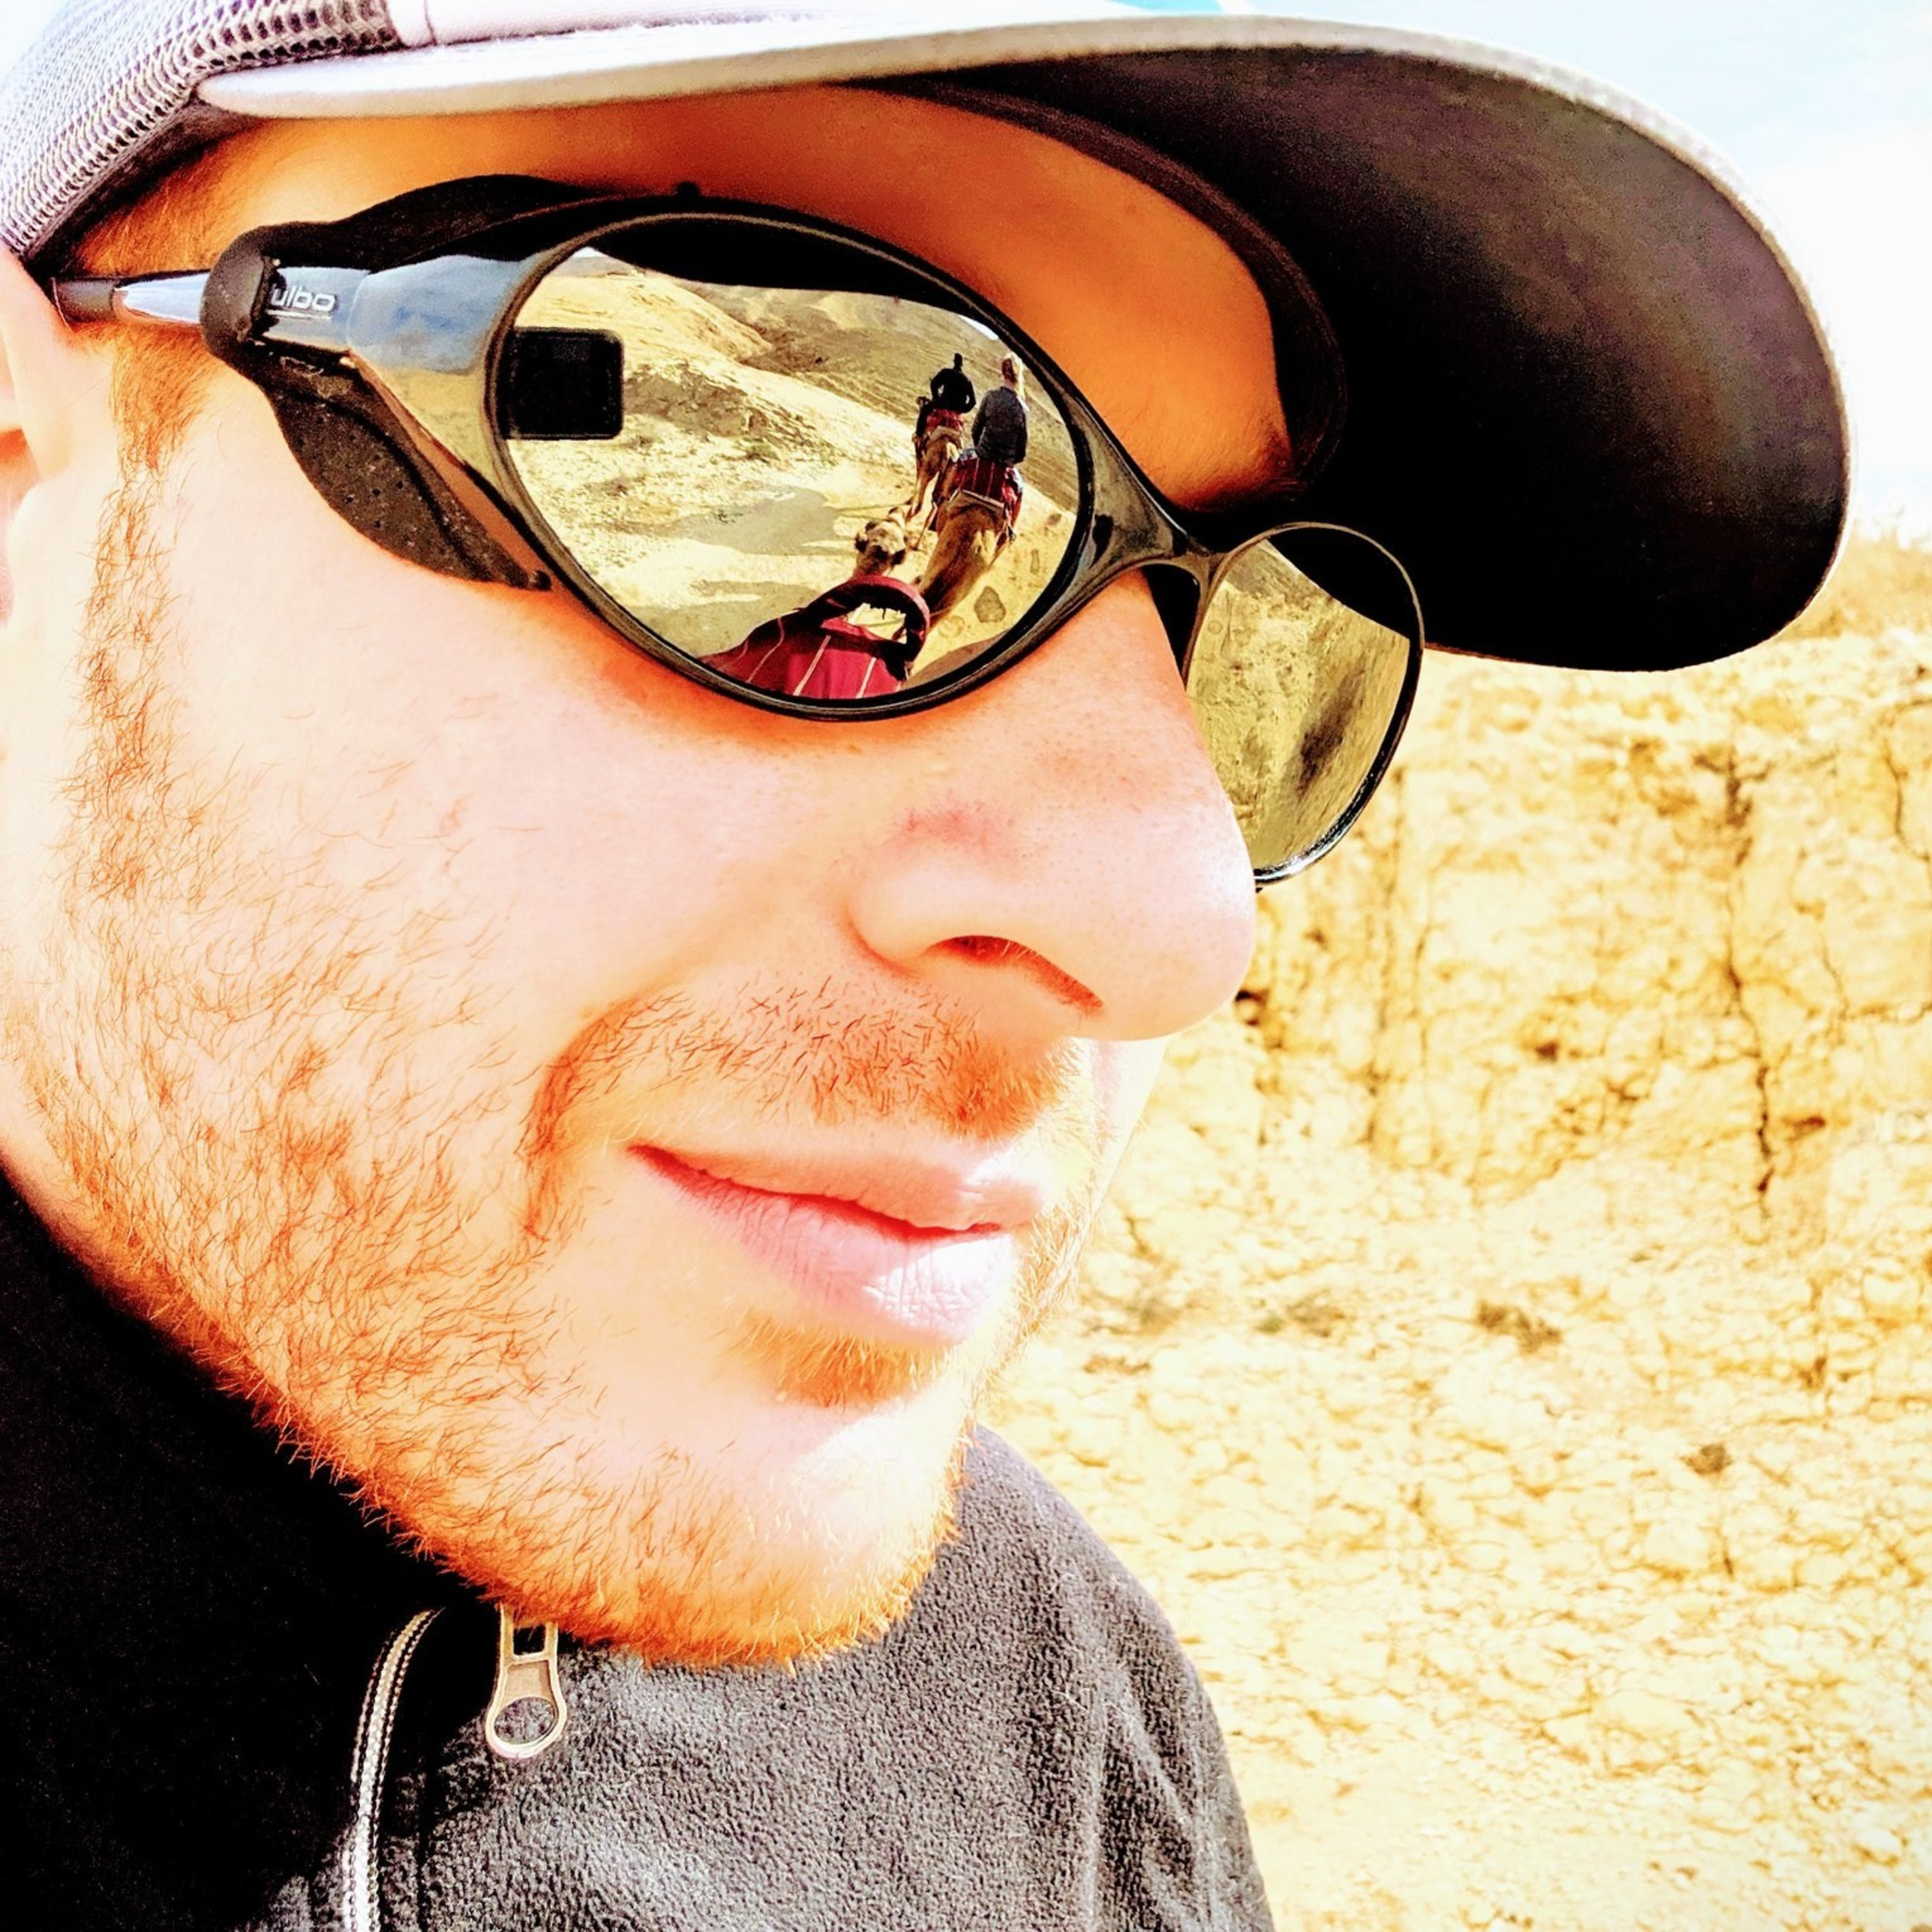 580. Adam on Nor'East status, Badwater 146 and his training.